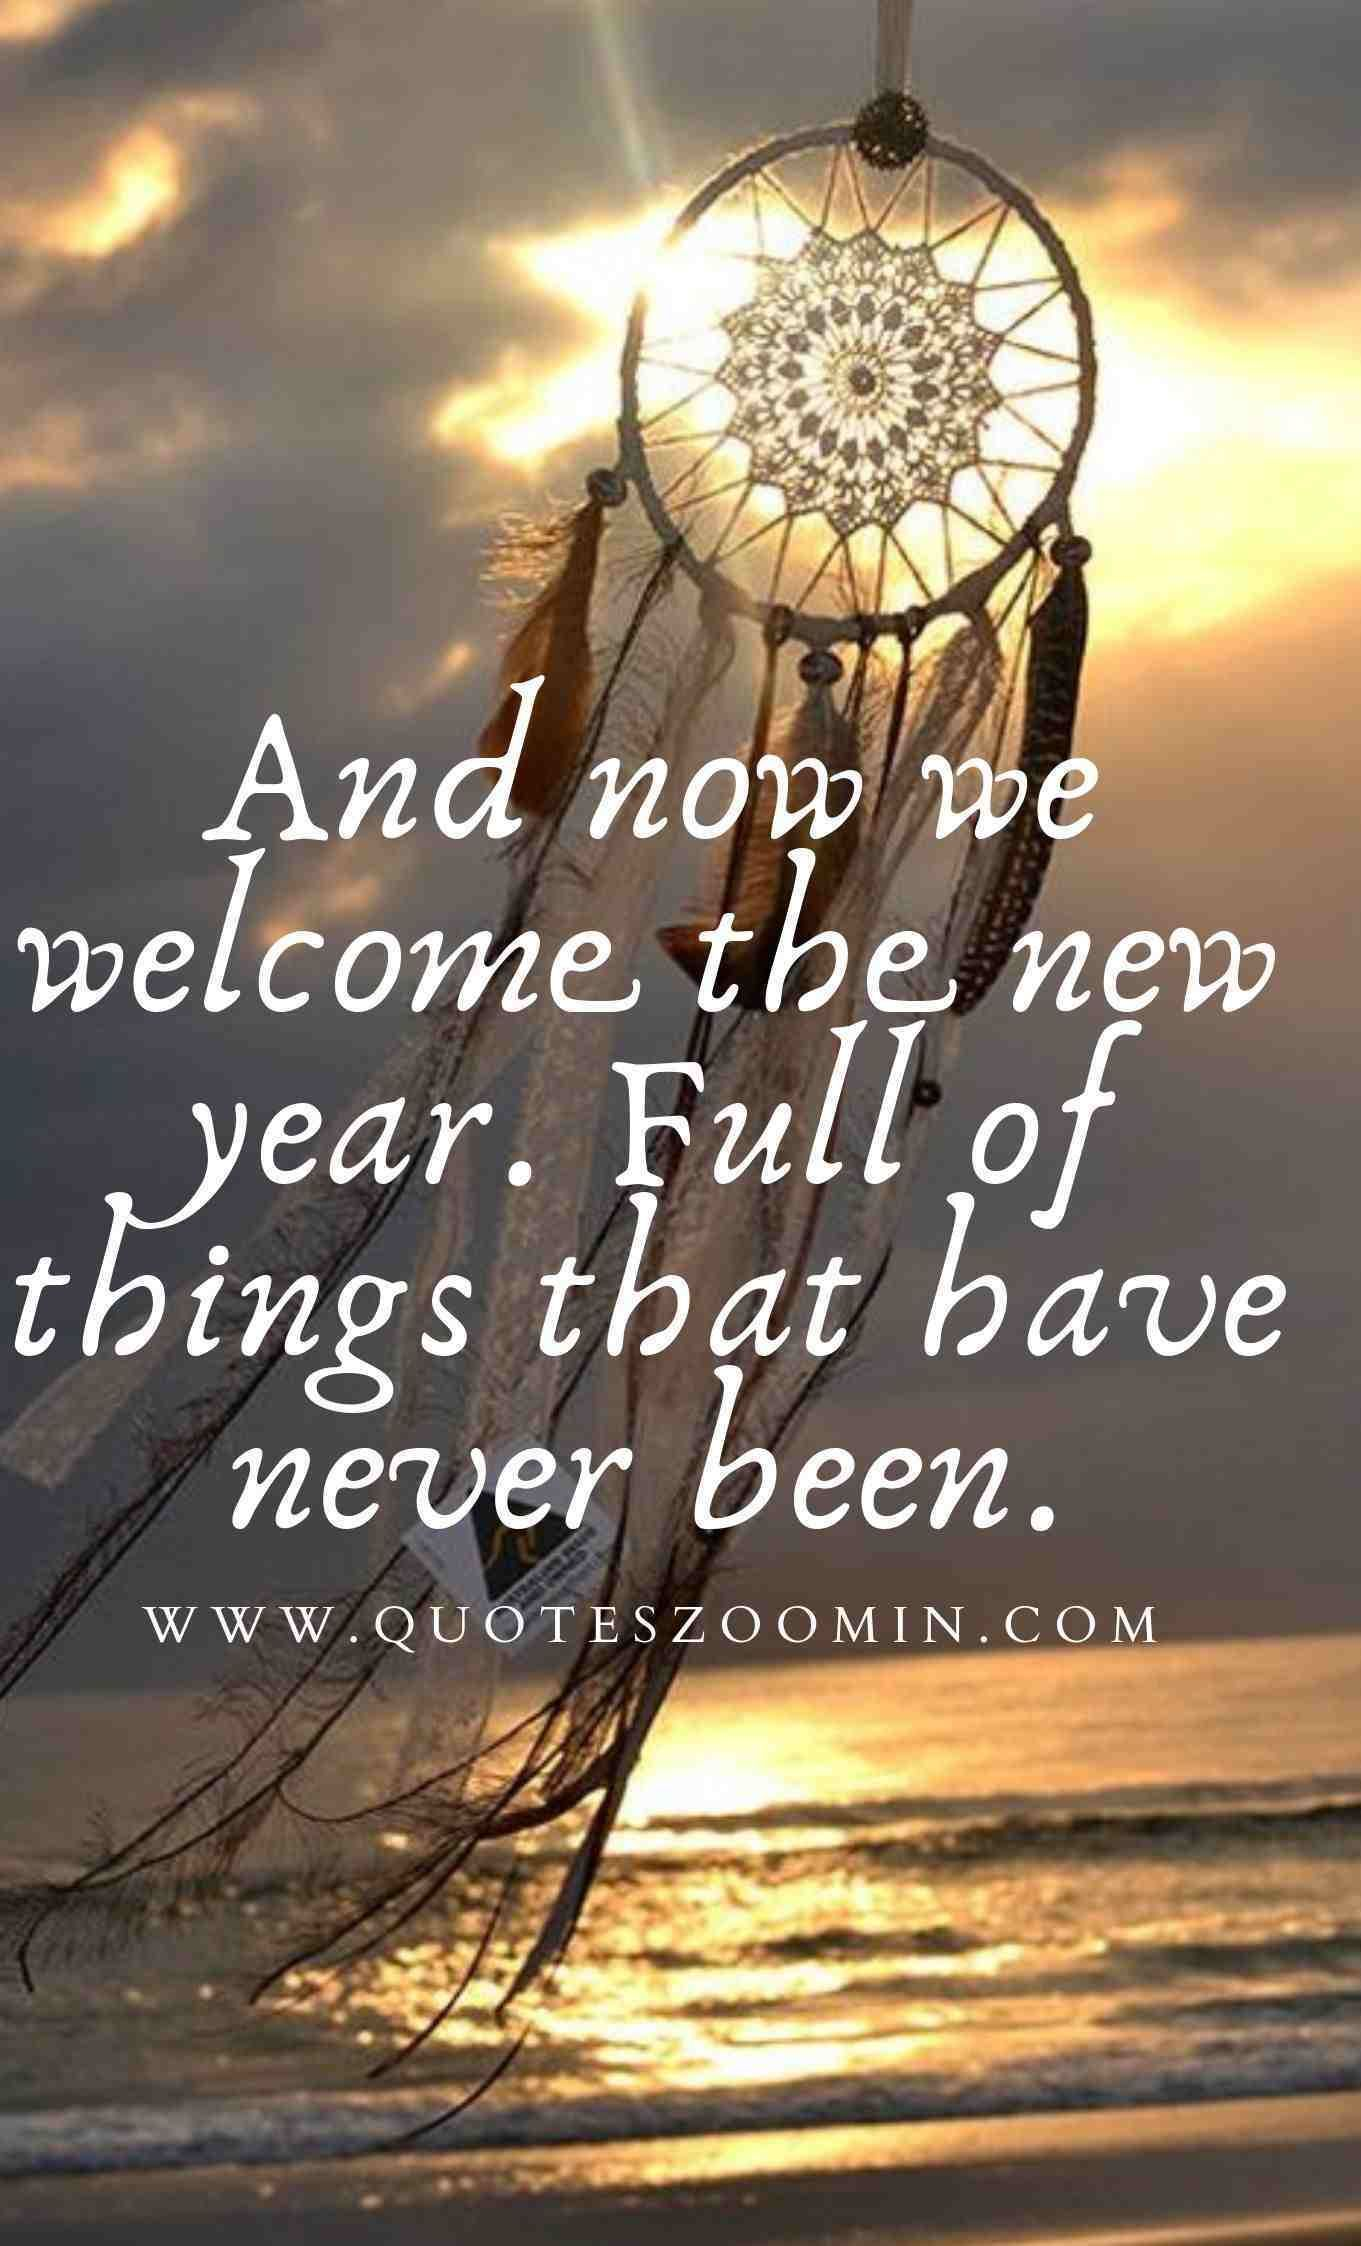 New year sayings thoughts 2020 for friends and family.